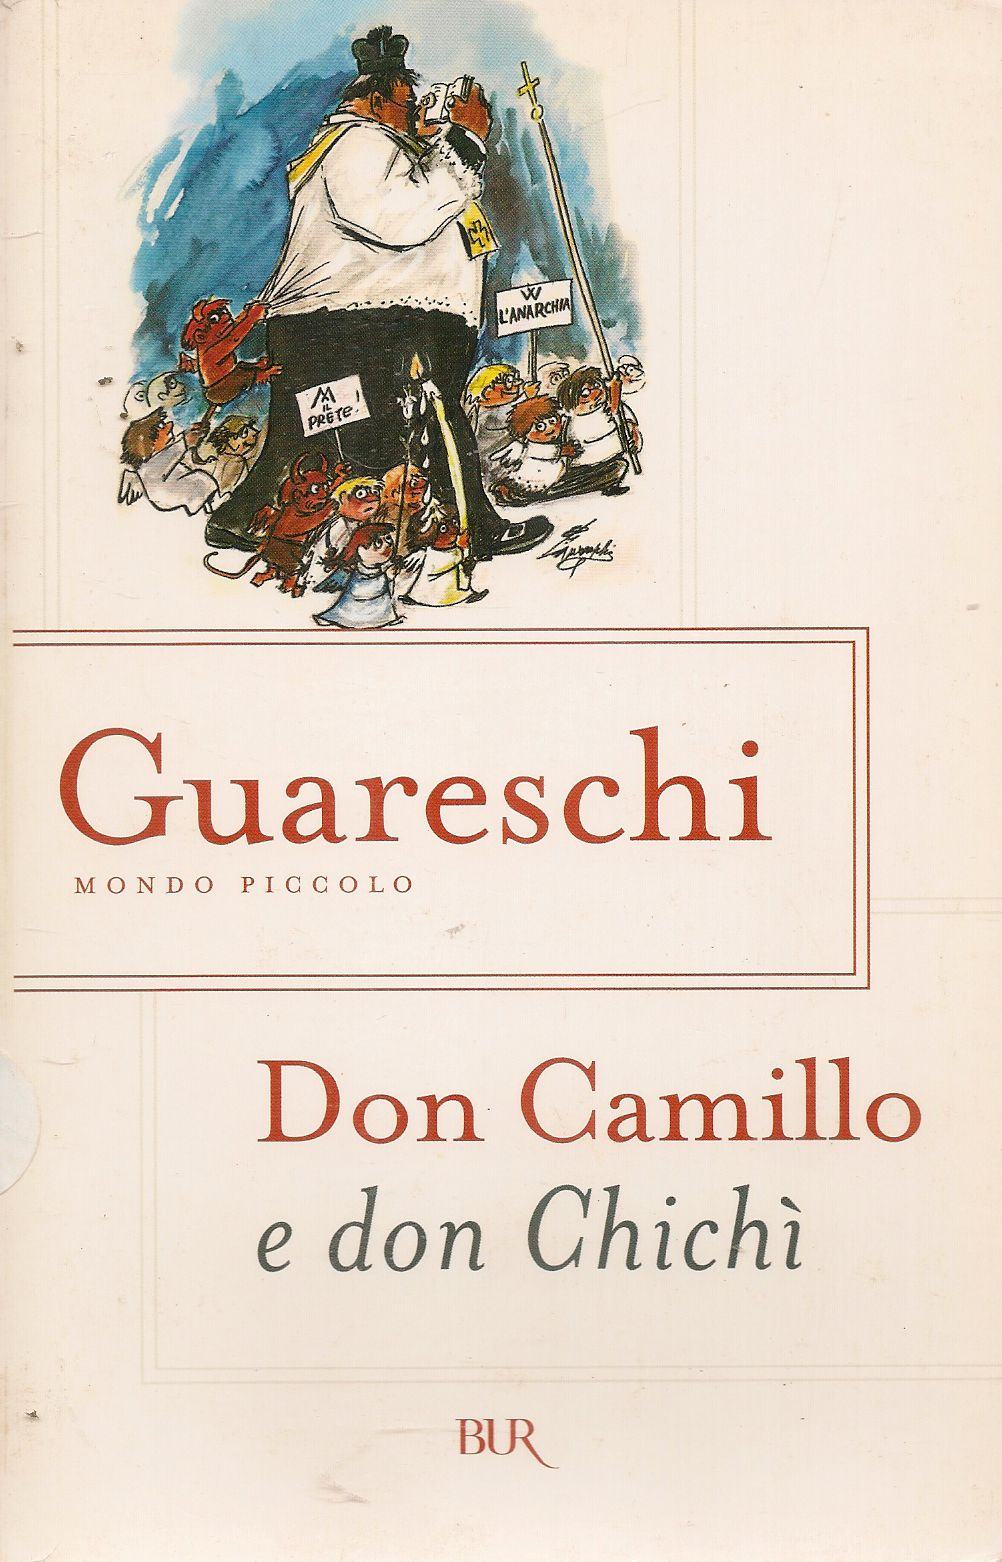 DON CAMILLO E DON CHICHI' - GUARESCHI